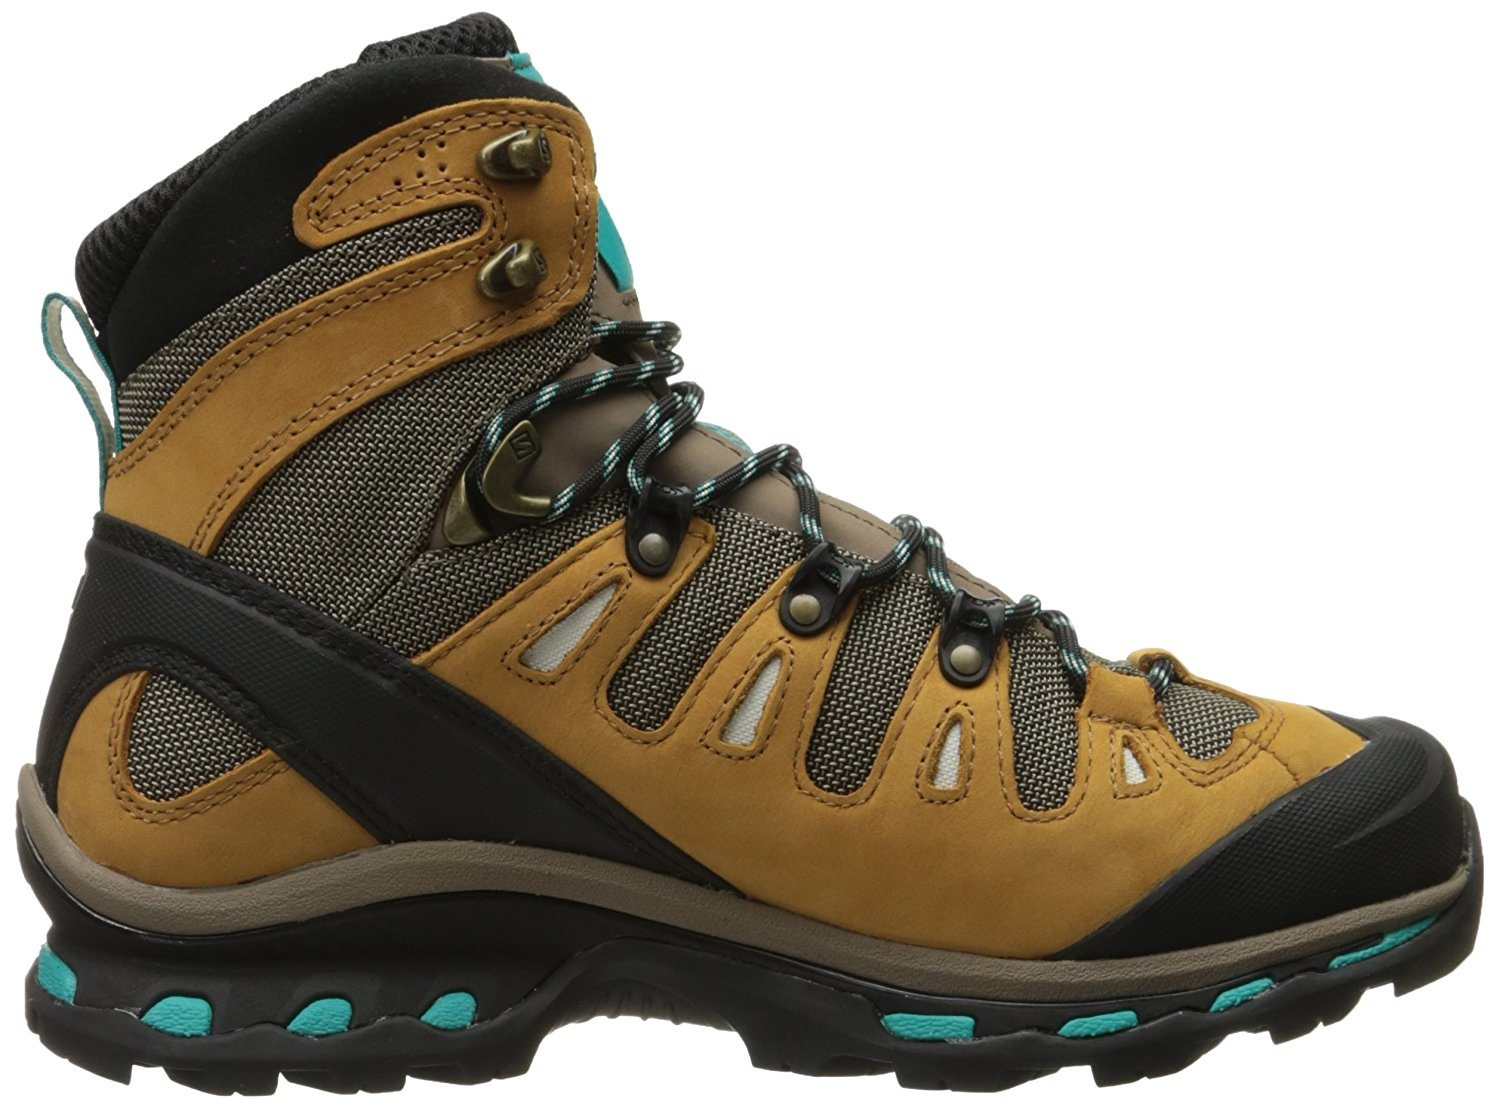 A side view of the Salomon Quest 4D 2 GTX hiking boot